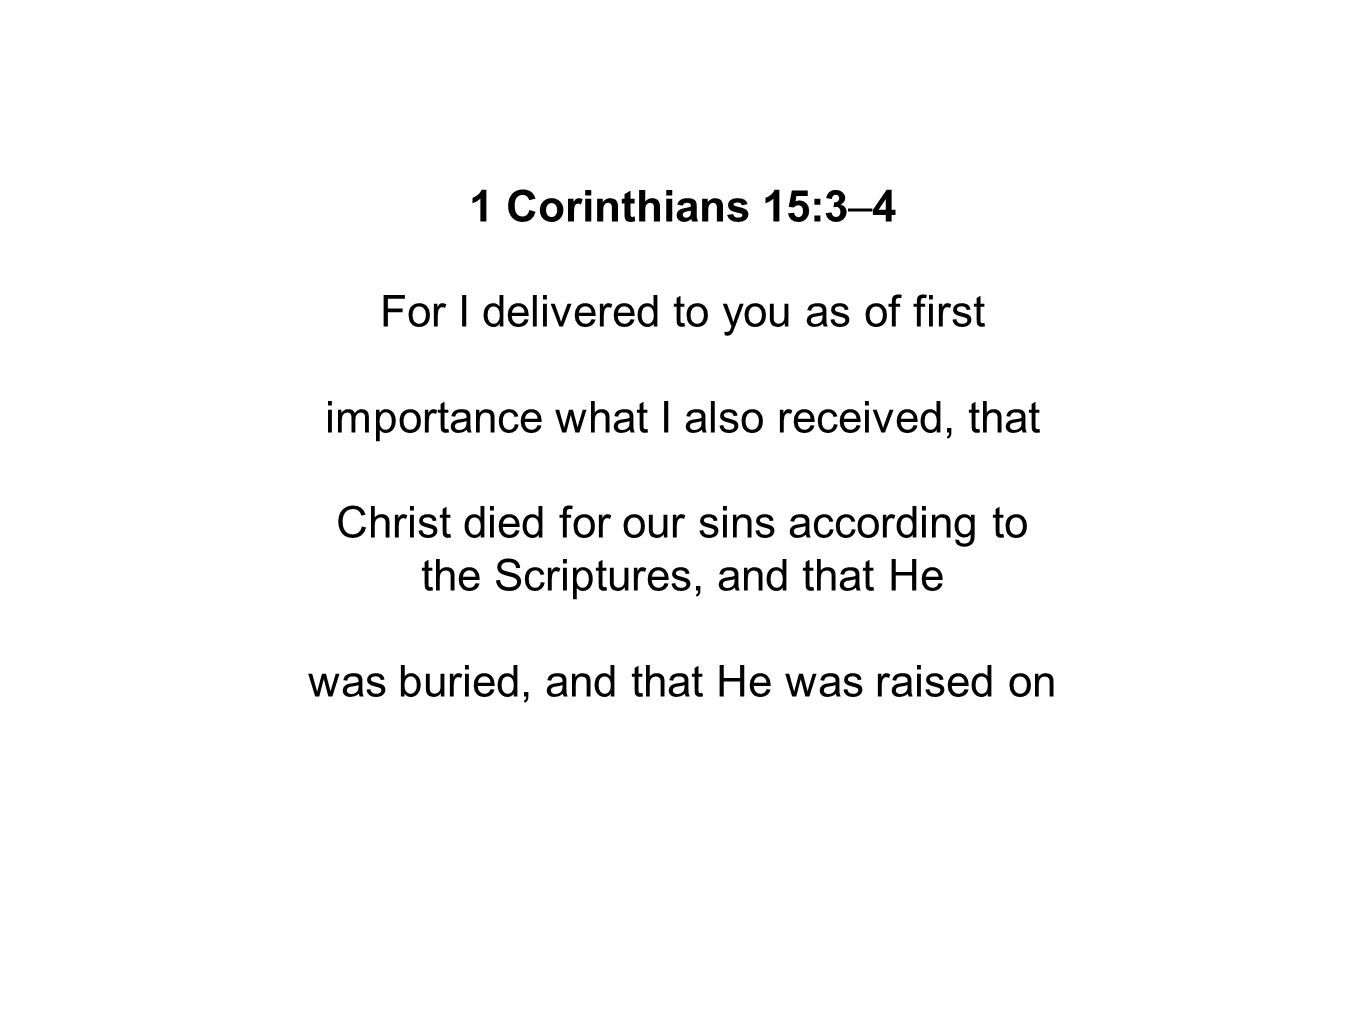 1 Corinthians 15:3–4 For I delivered to you as of first importance what I also received, that Christ died for our sins according to the Scriptures, and that He was buried, and that He was raised on